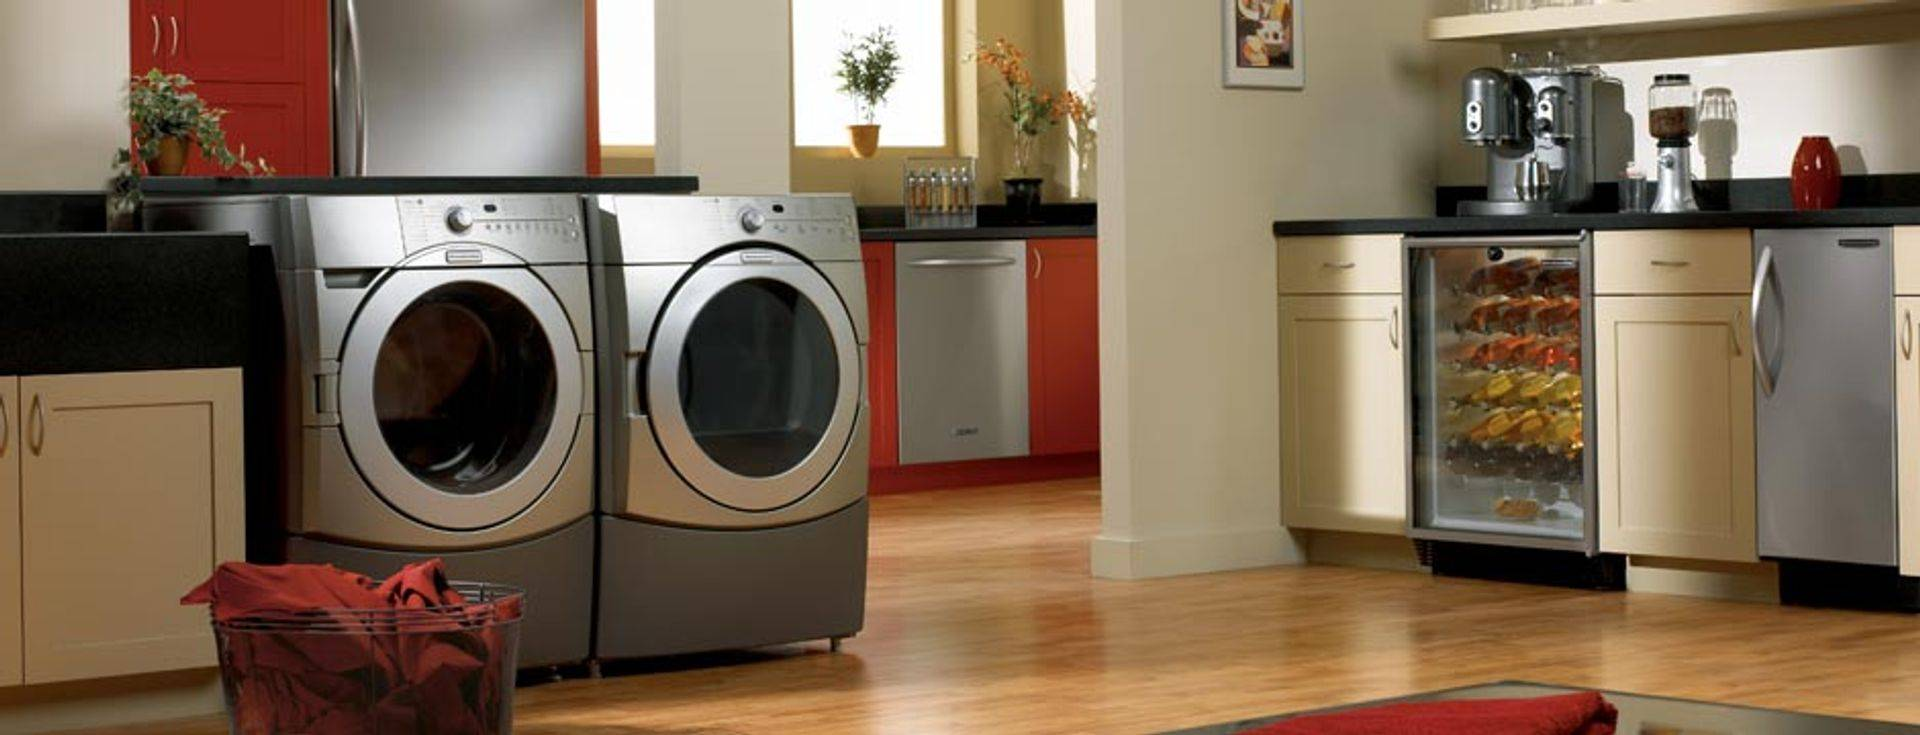 Washer and Dryer Laundry Room